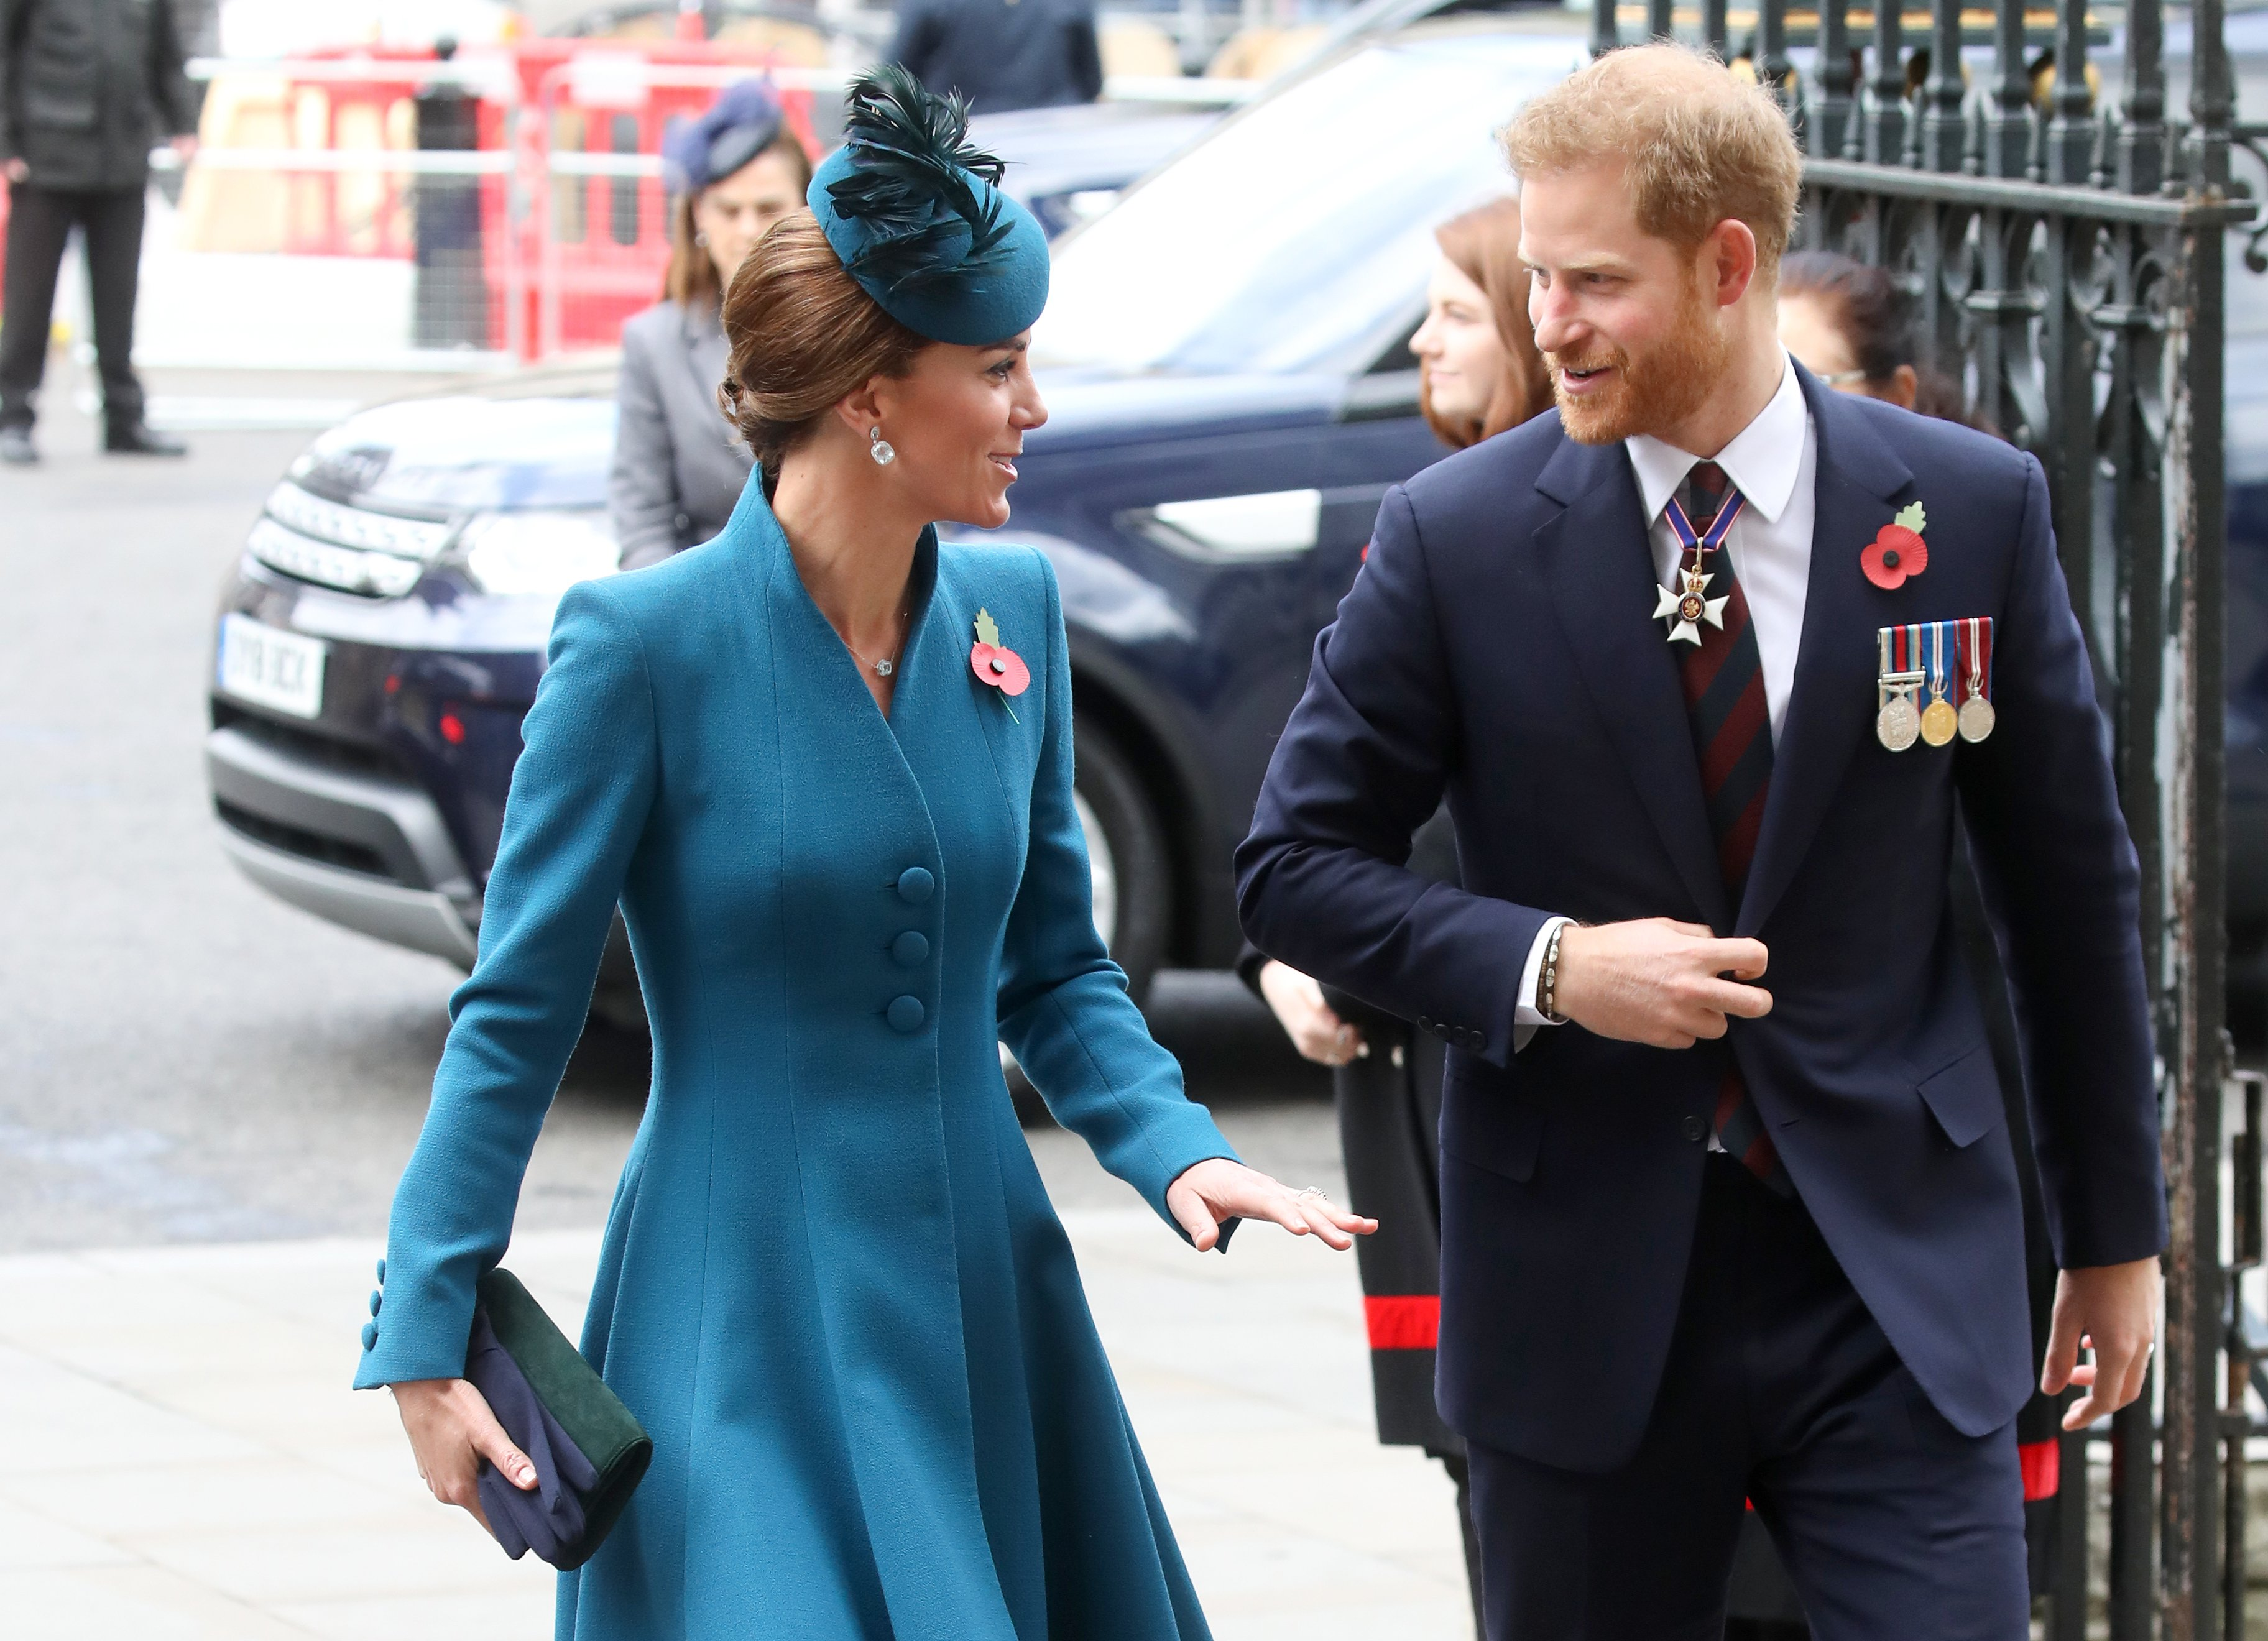 Prince Harry and Kate Middleton laugh on their way to commemorate Anzac Day in April 2019 | Photo: Getty Images